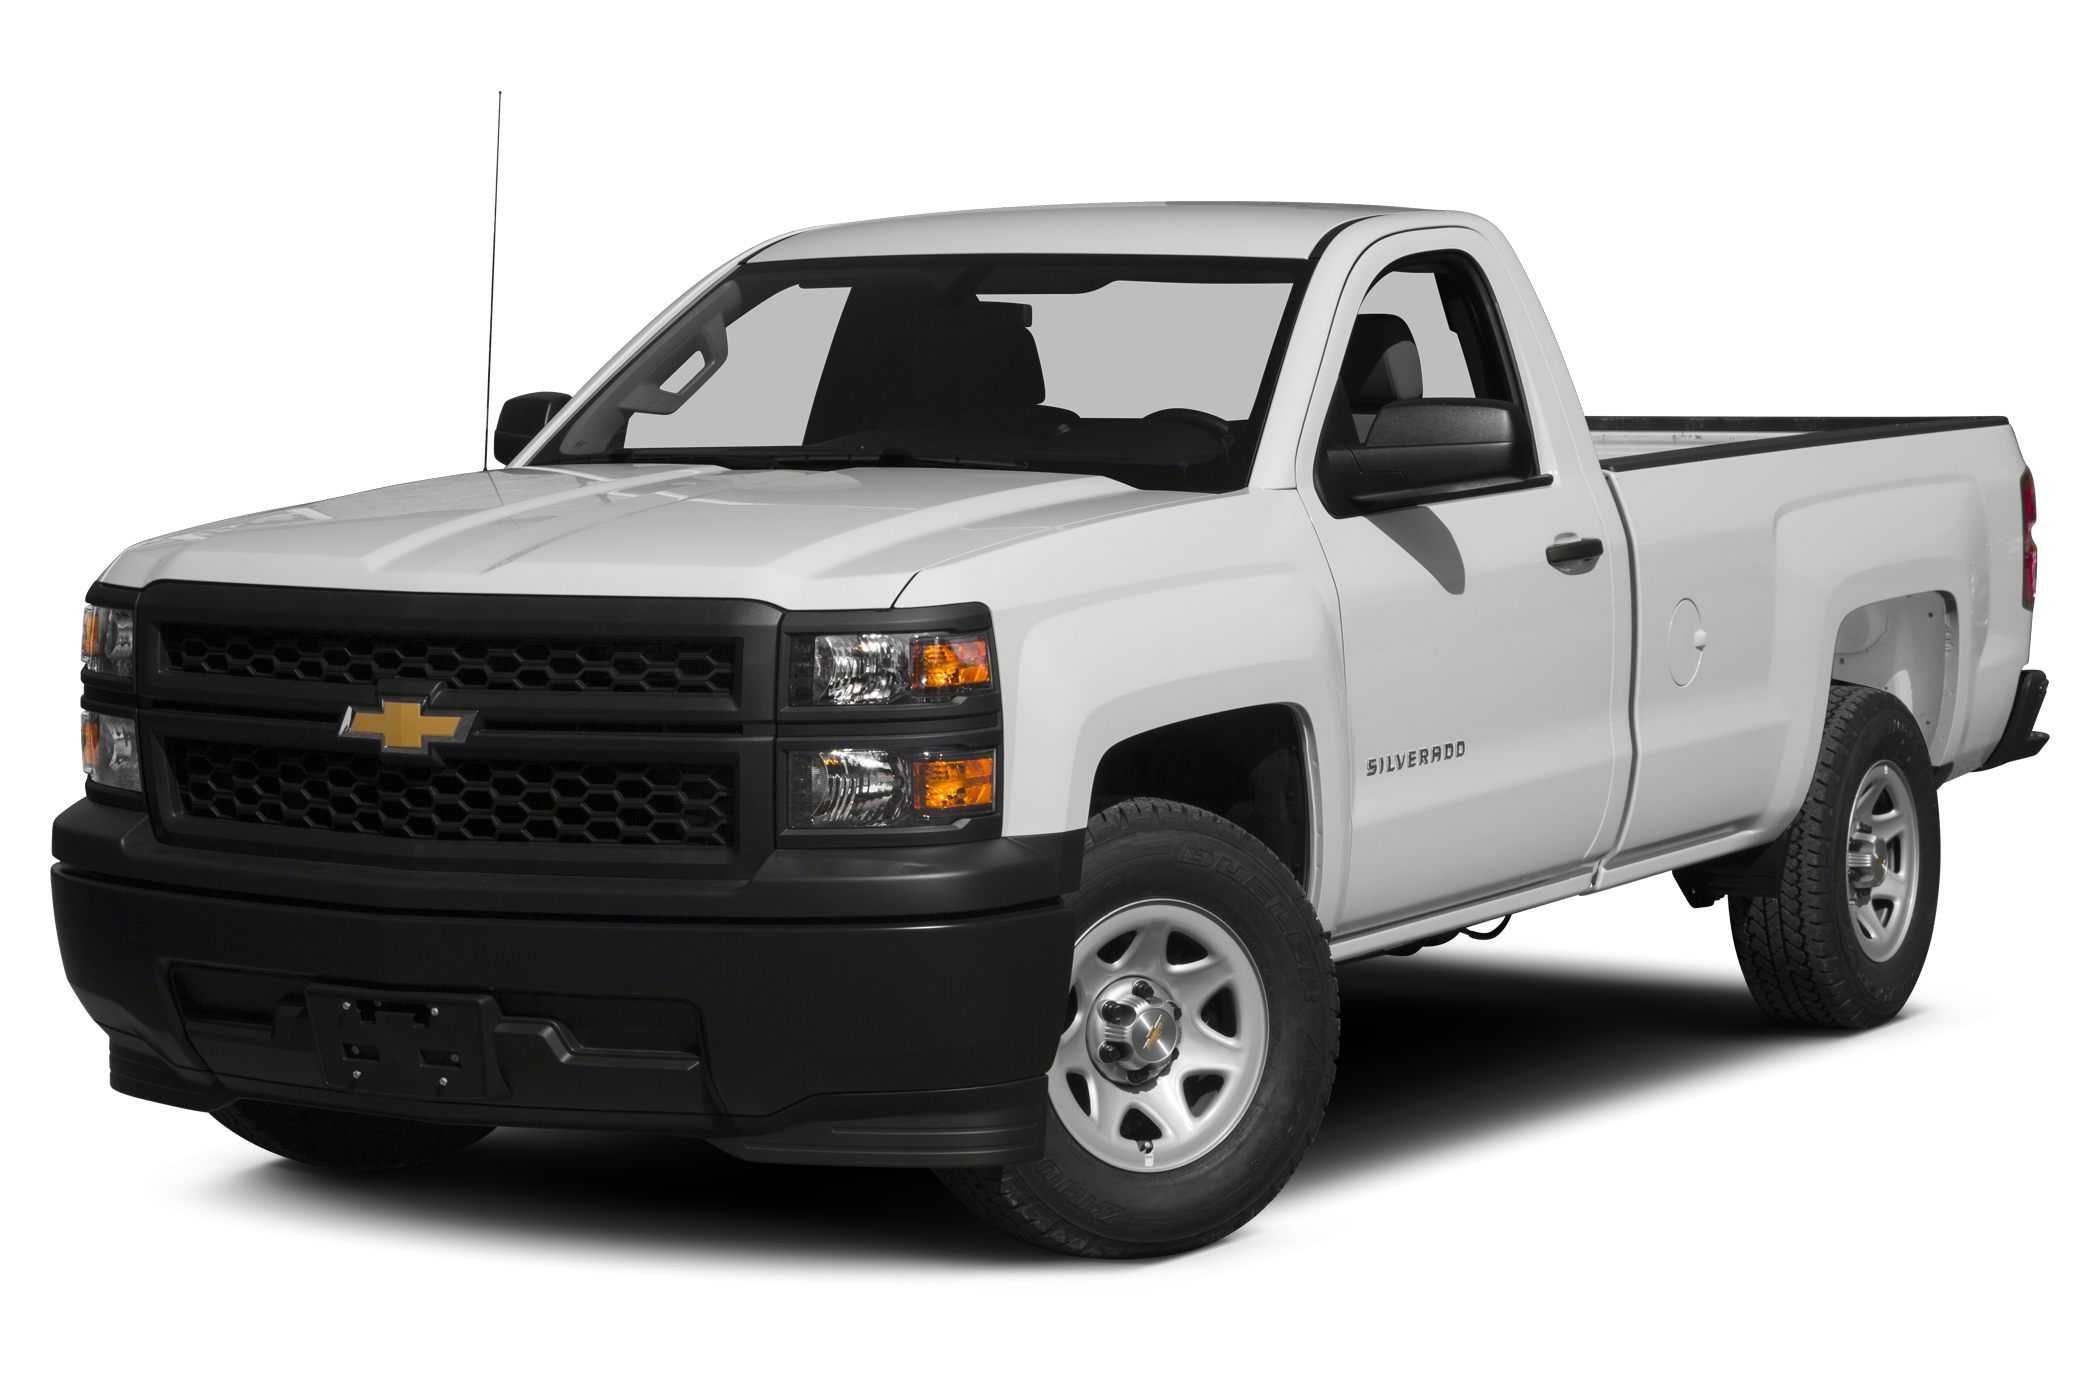 2015 Chevrolet Silverado 1500 LS Extended Cab Pickup for sale in Abbeville for $30,488 with 5 miles